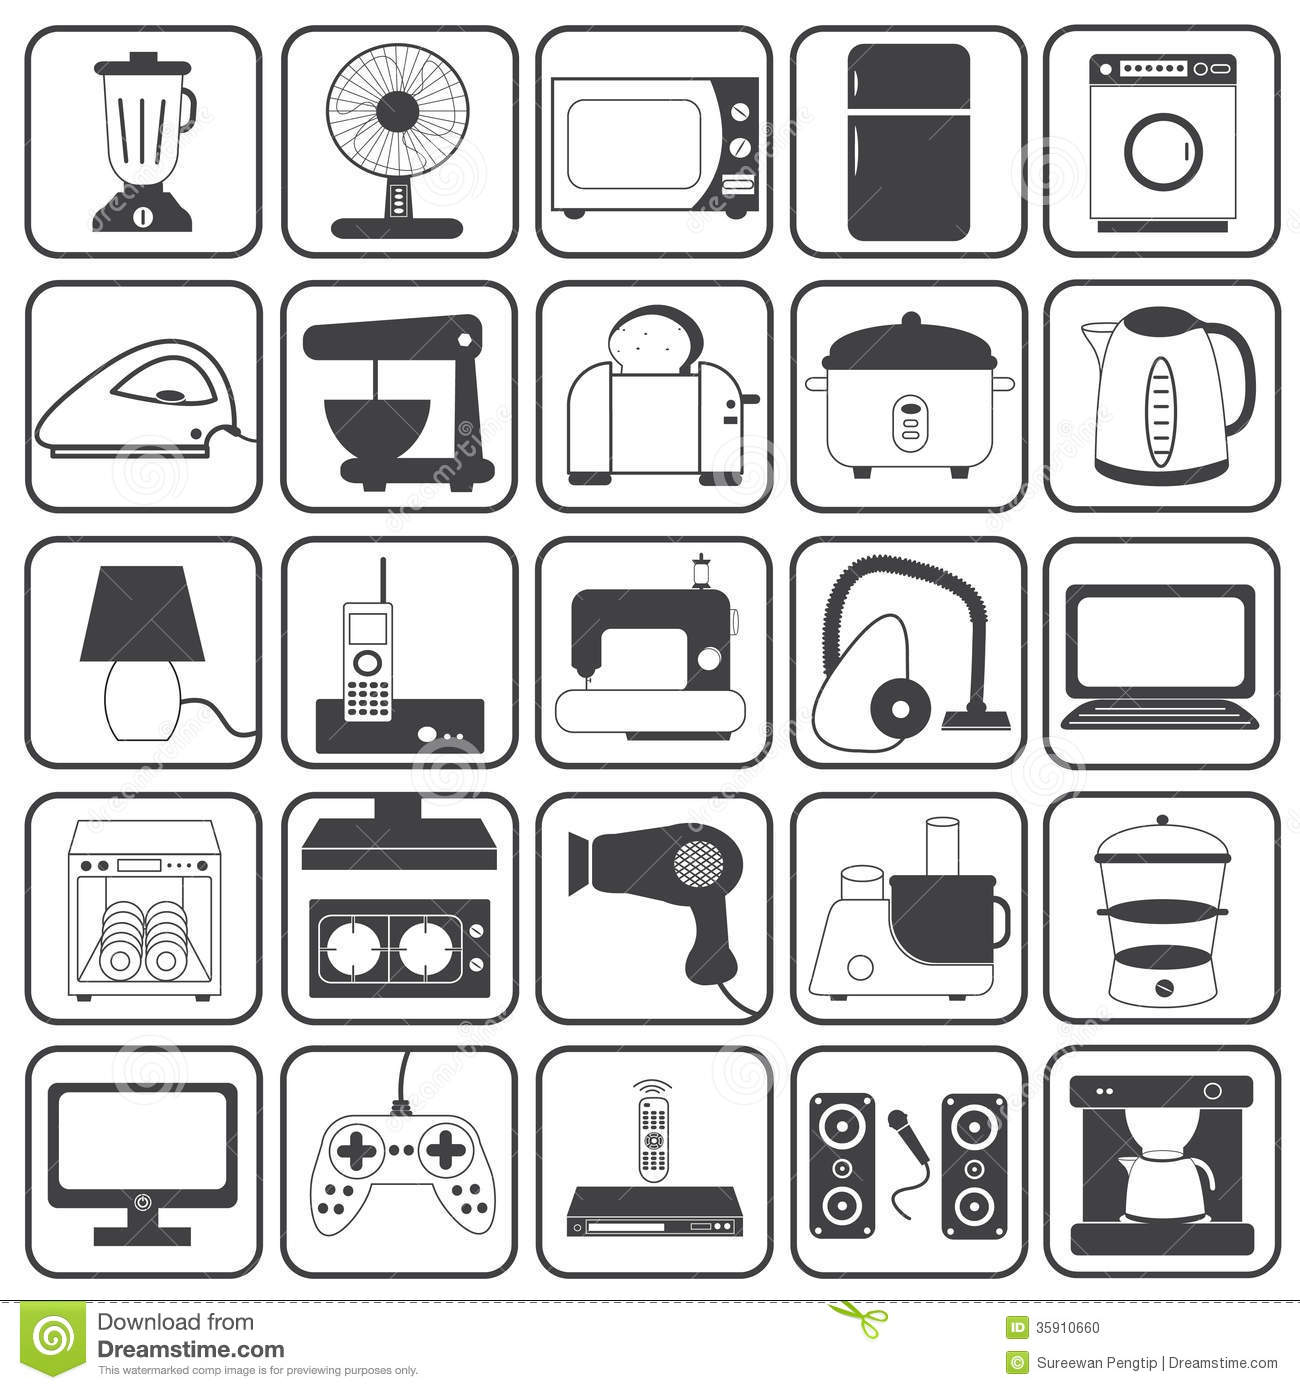 Home appliances clipart free download.